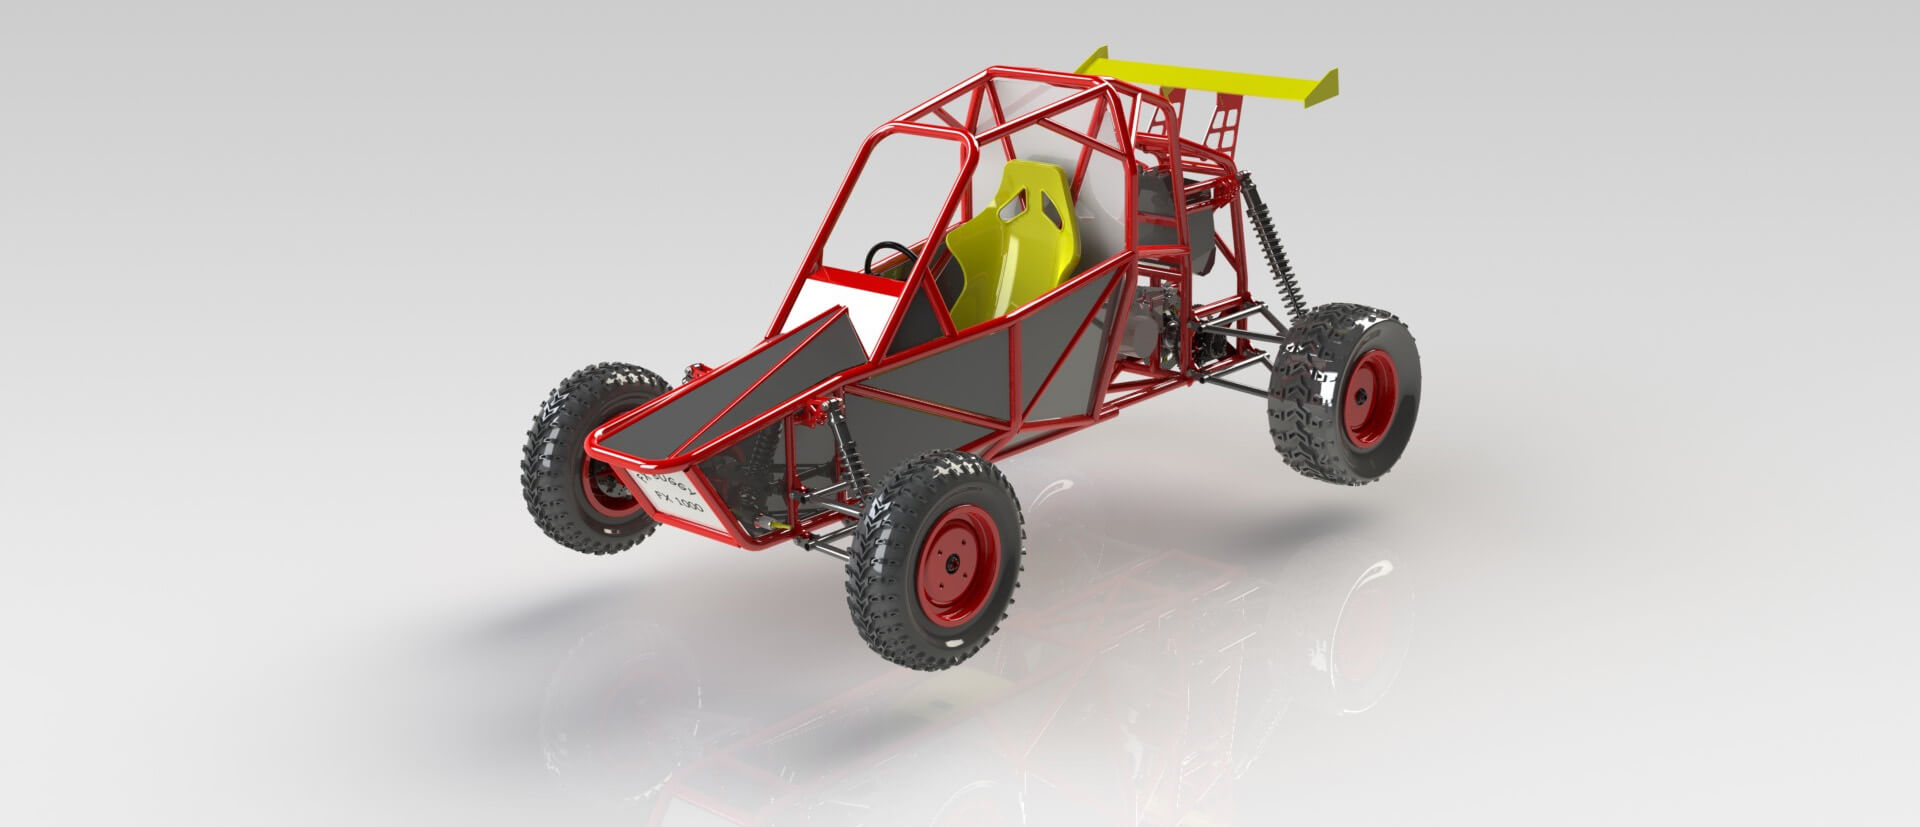 Kart Cross Buggy Build Get Plans And Parts To Build Your Own Crosskart Fx Buggy